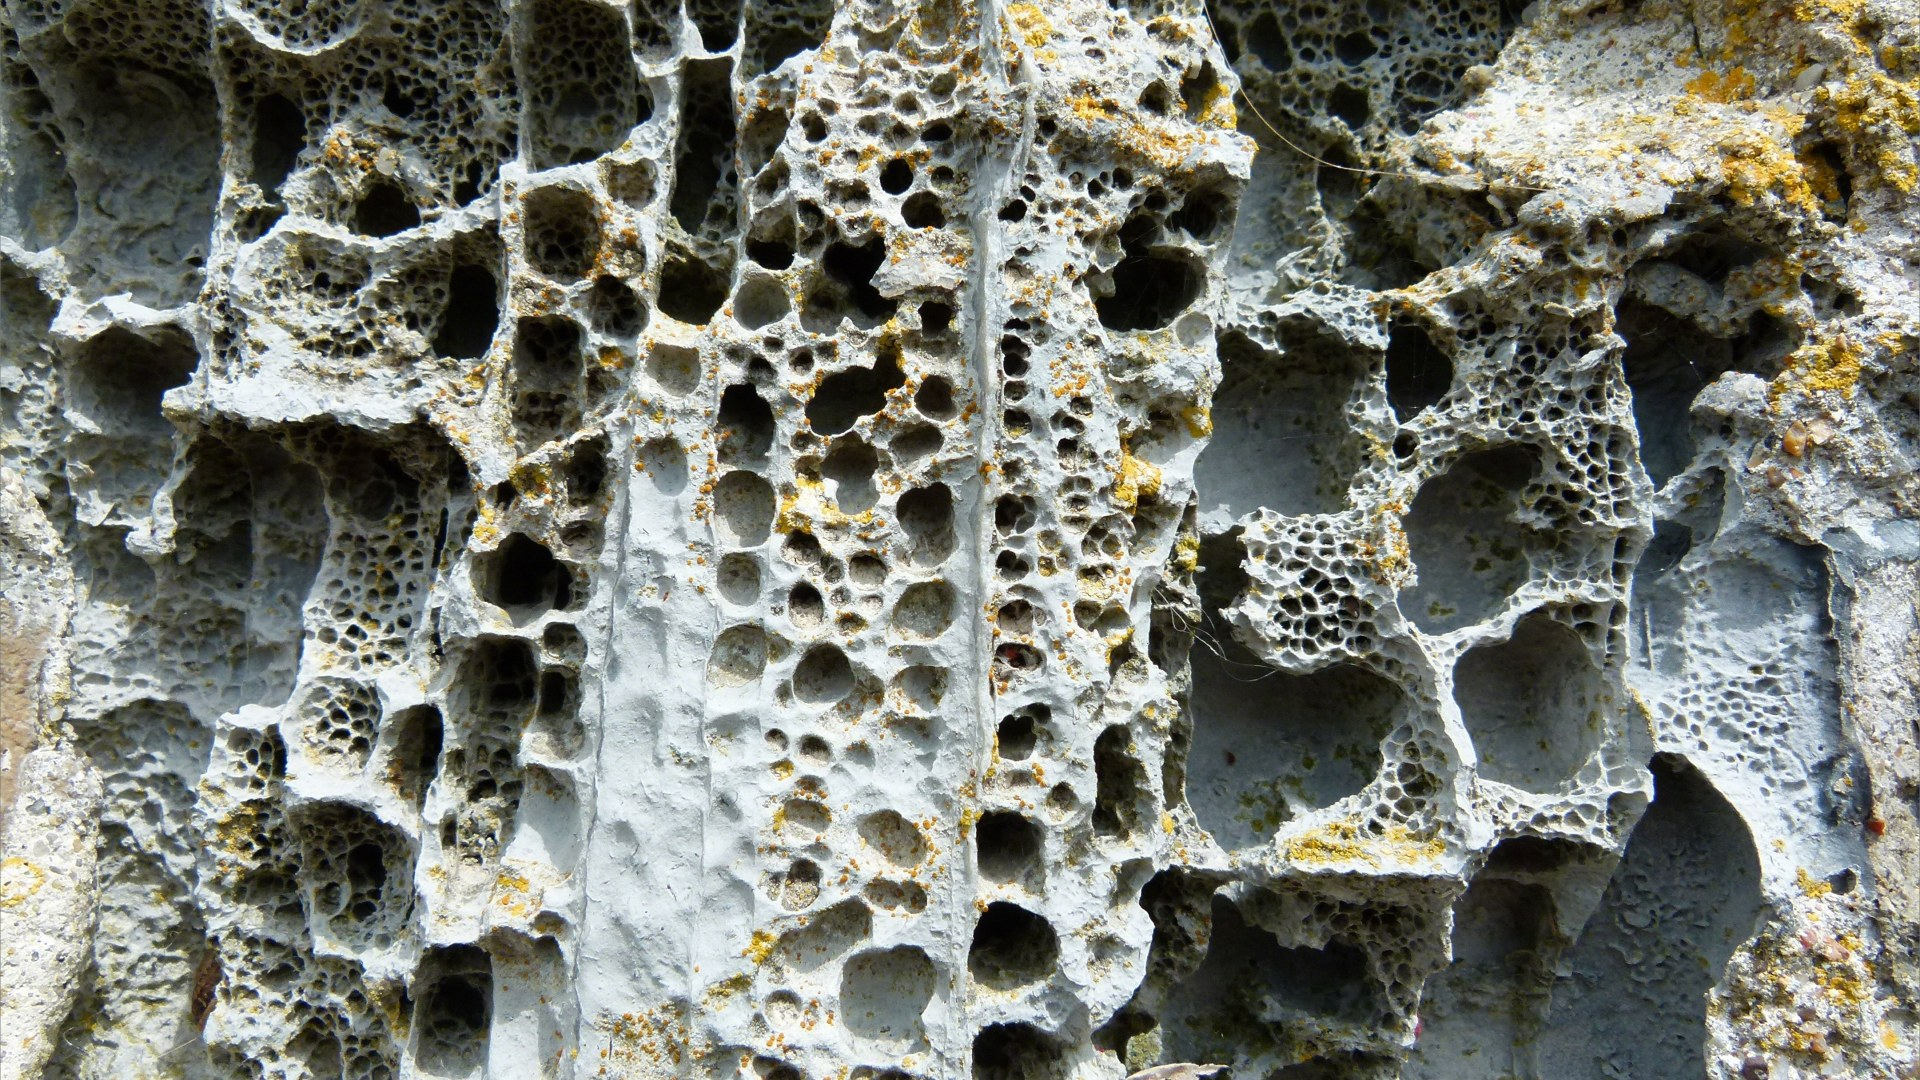 Sea wall rock with holes caused by weathering erosion